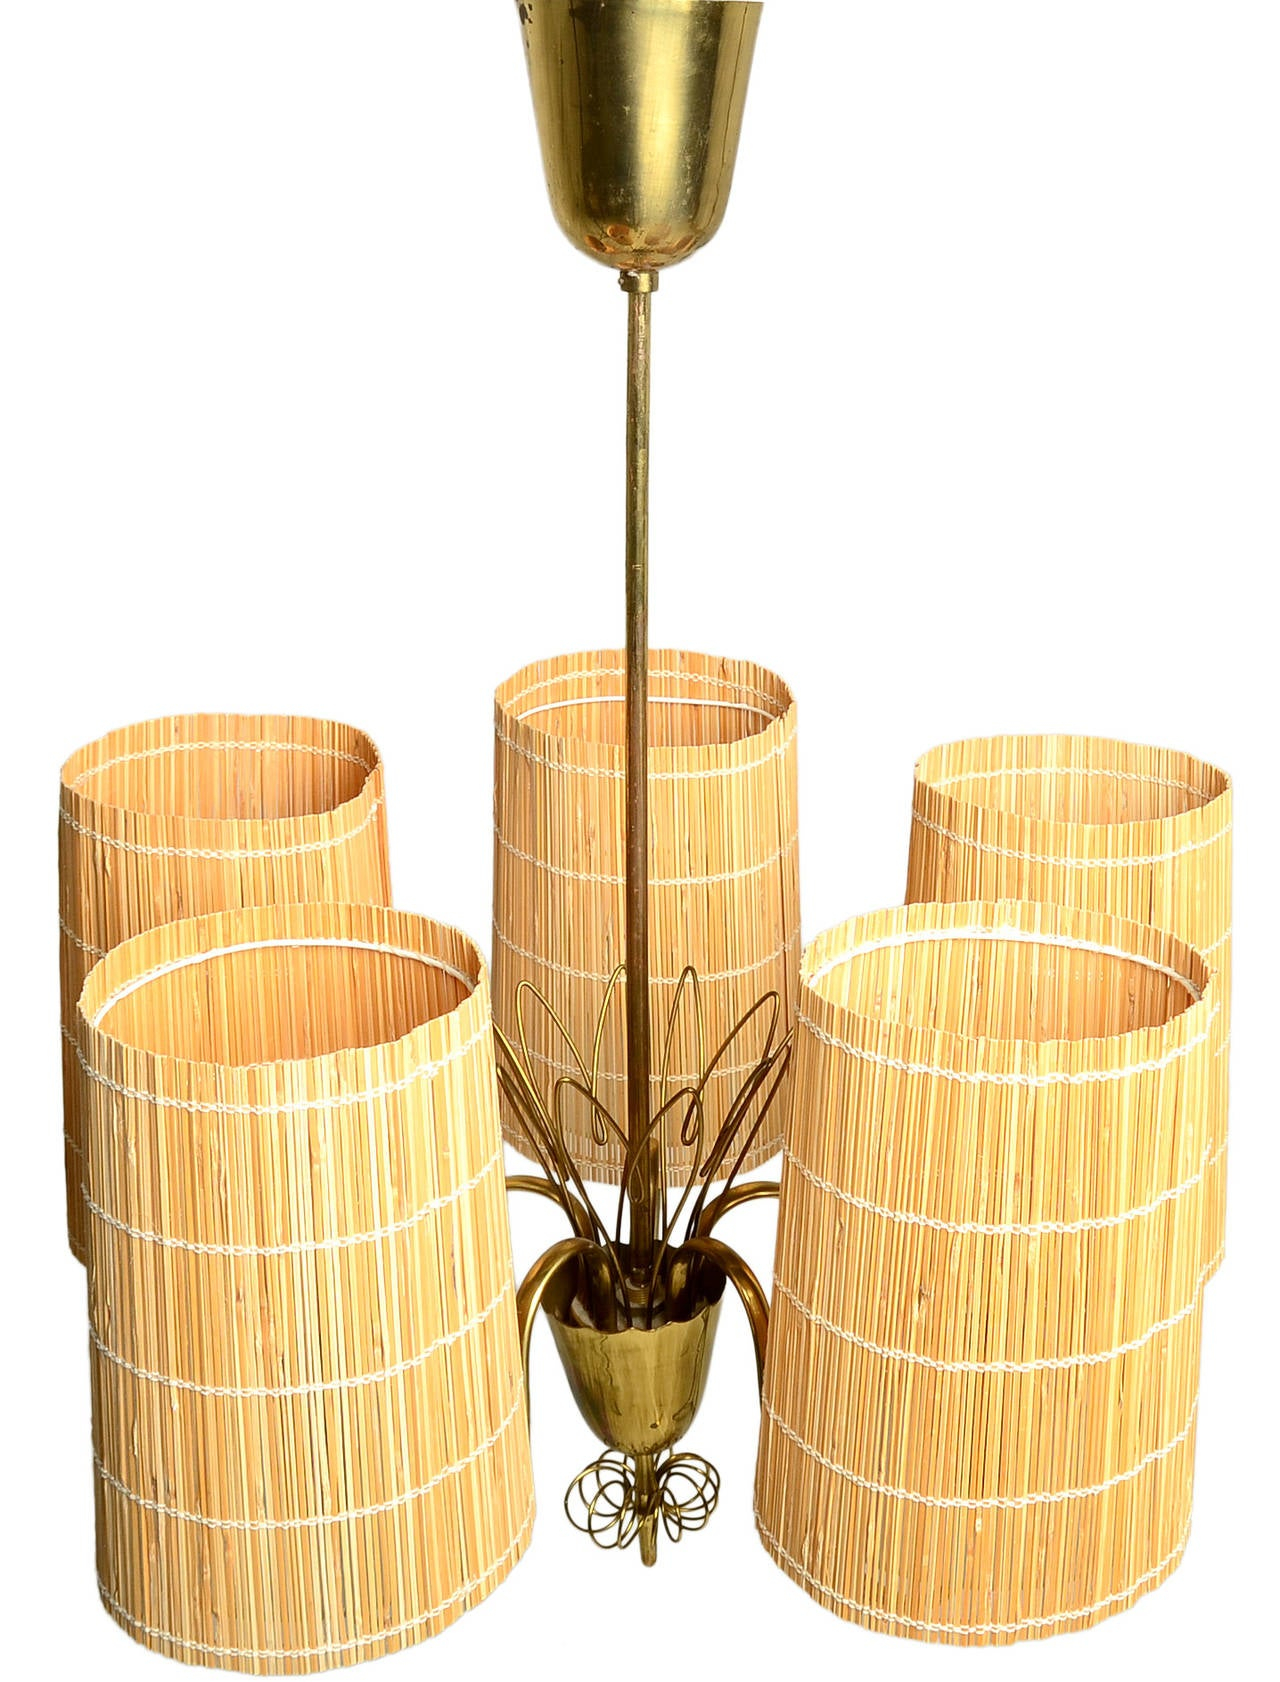 Scandinavian Modern Paavo Tynell Five-Arm Chandelier with Slatted Shades For Sale